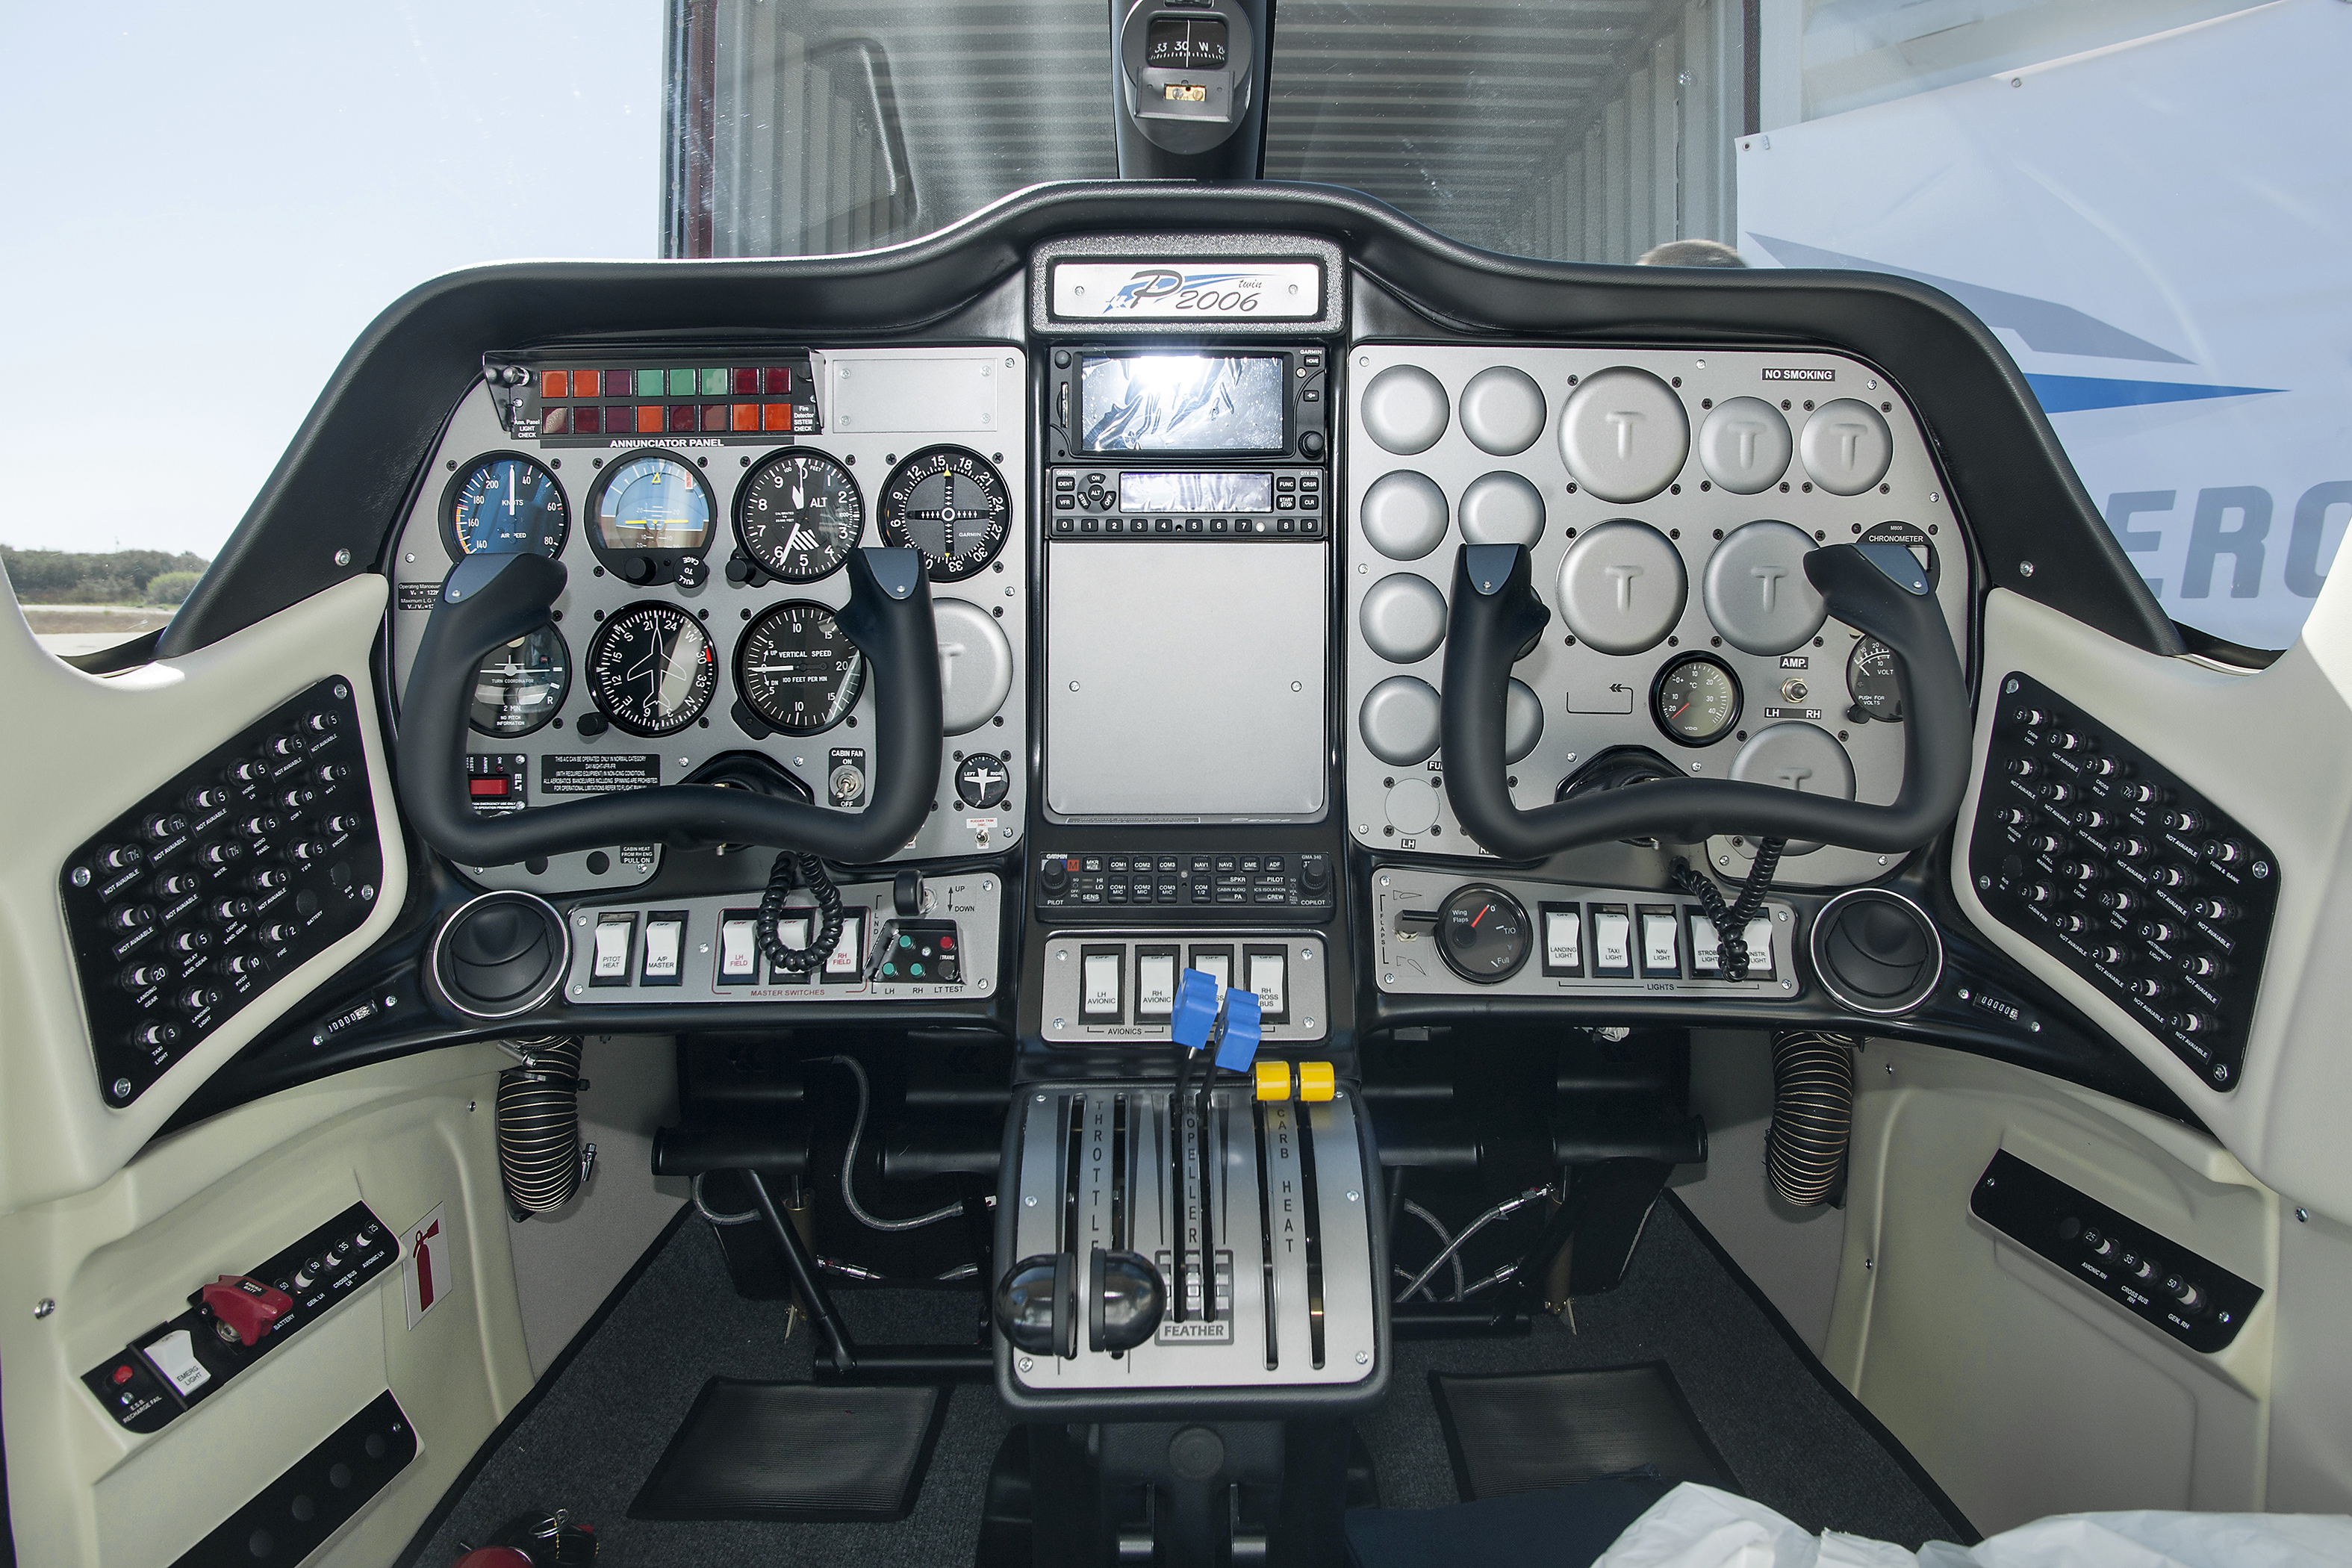 With the recent advances in technology and design aircraft concepts - The Tecnam P2006t Cockpit